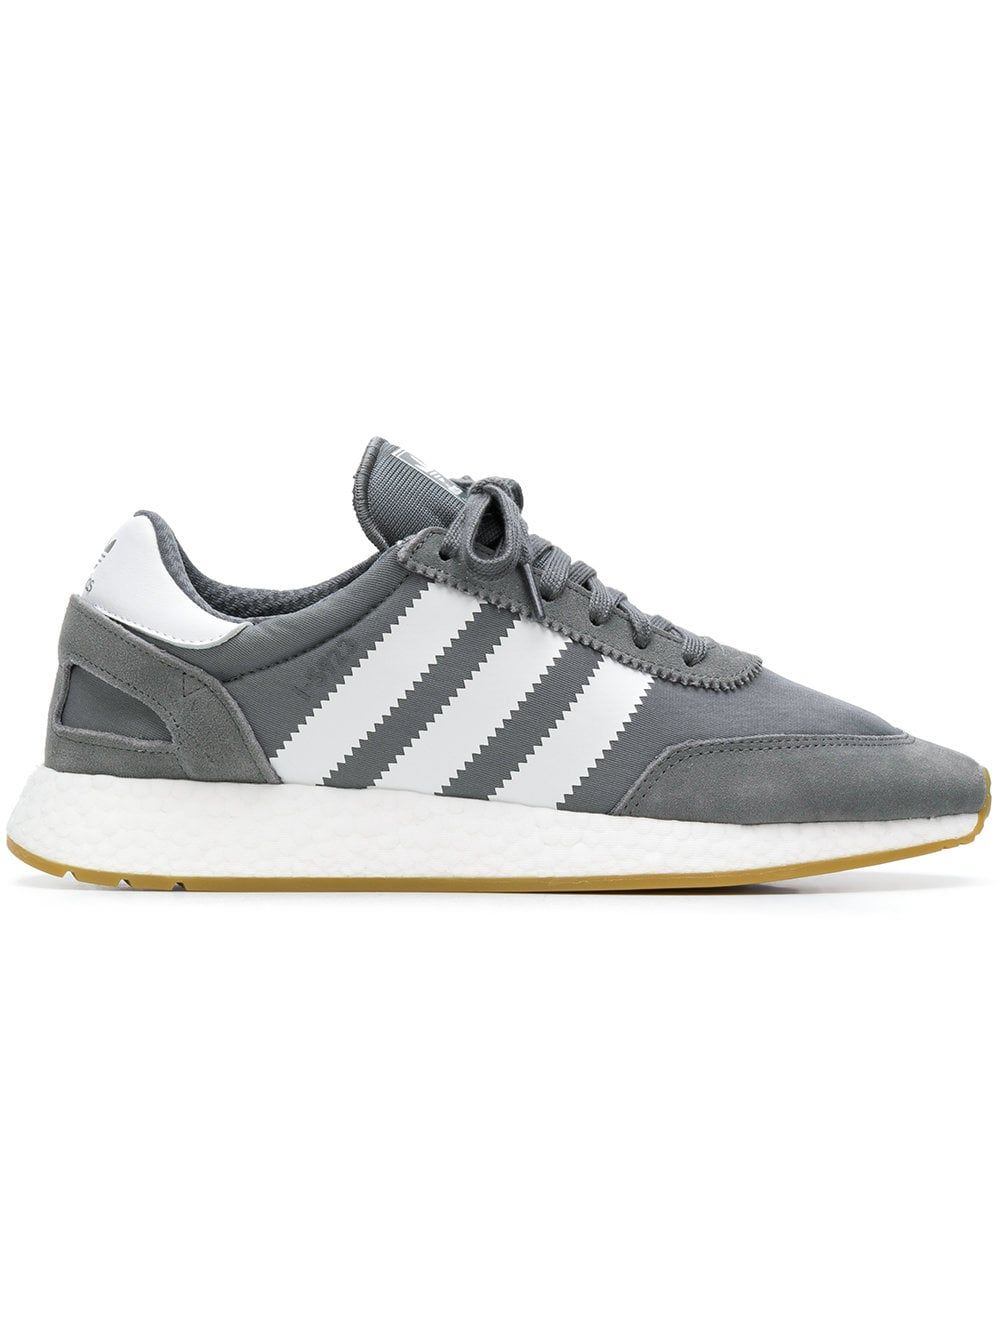 The Best Adidas Sneakers - Classic